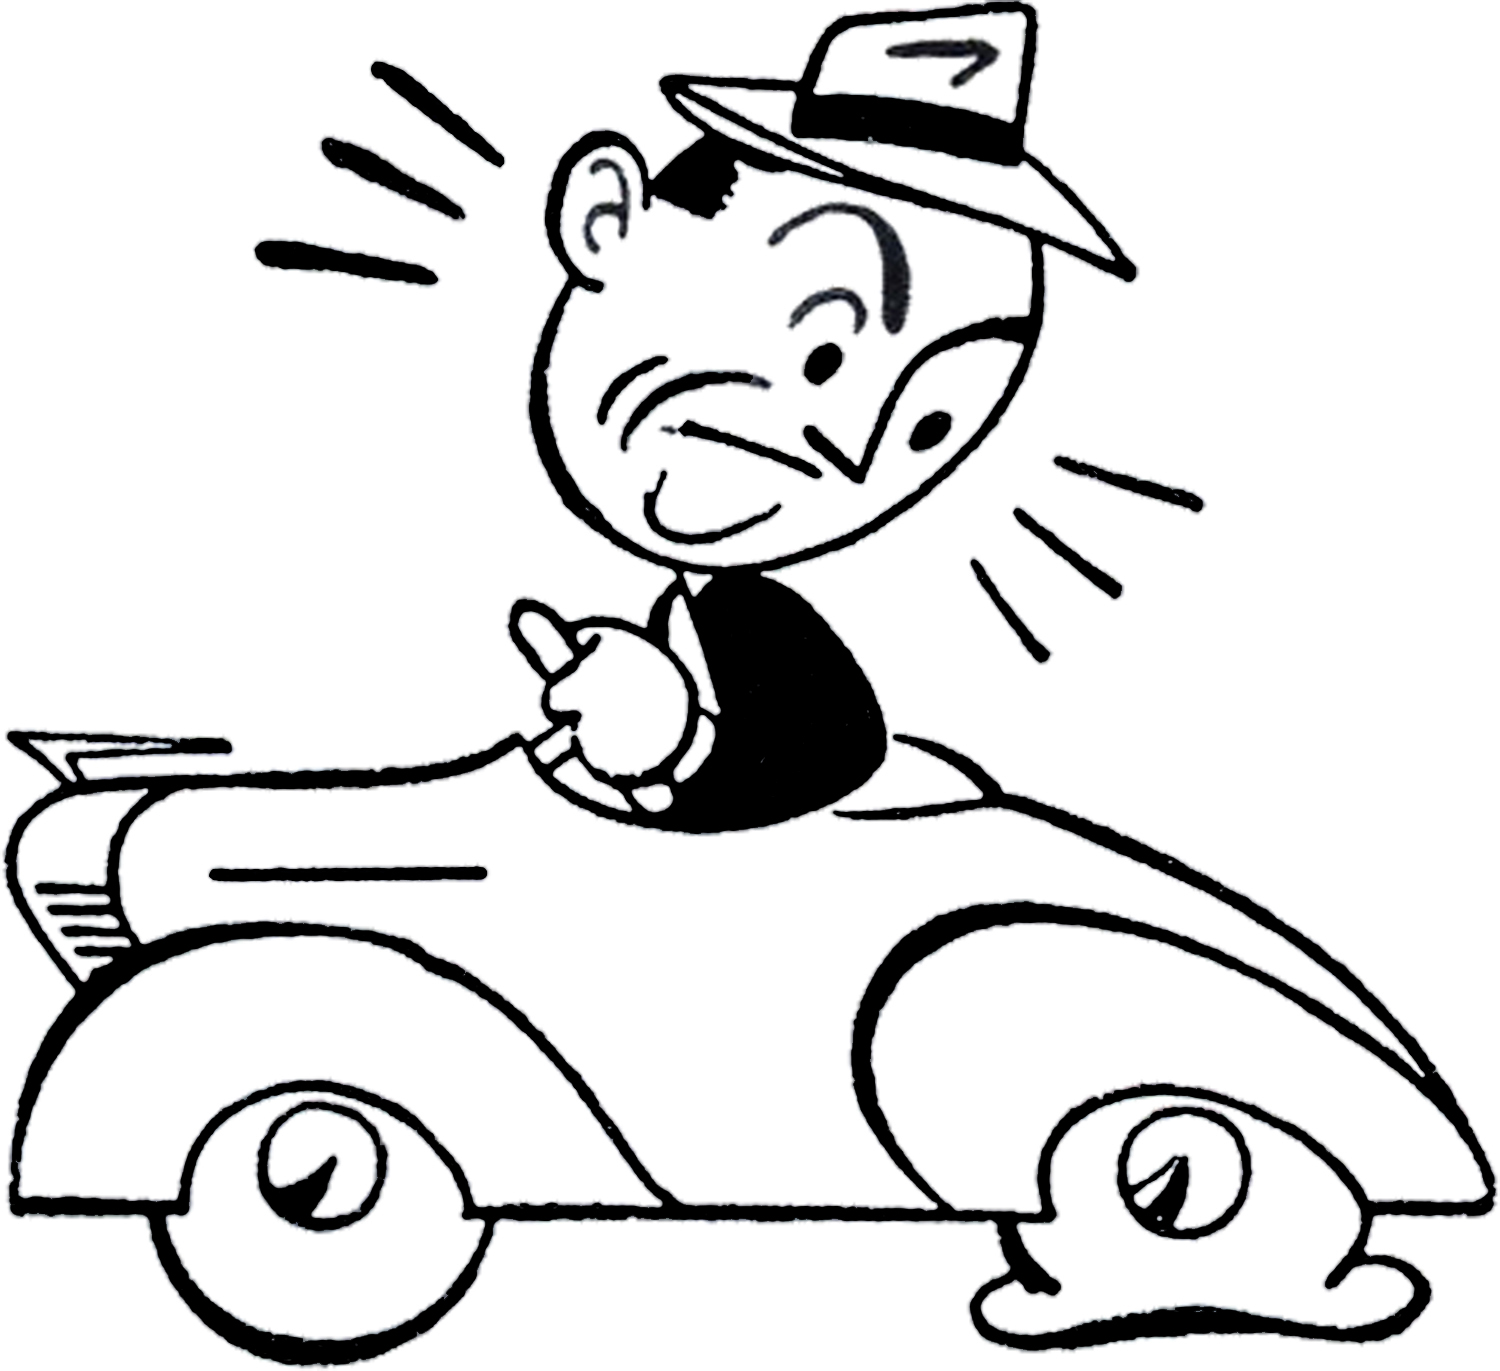 Retro Car Trouble Clip Art.